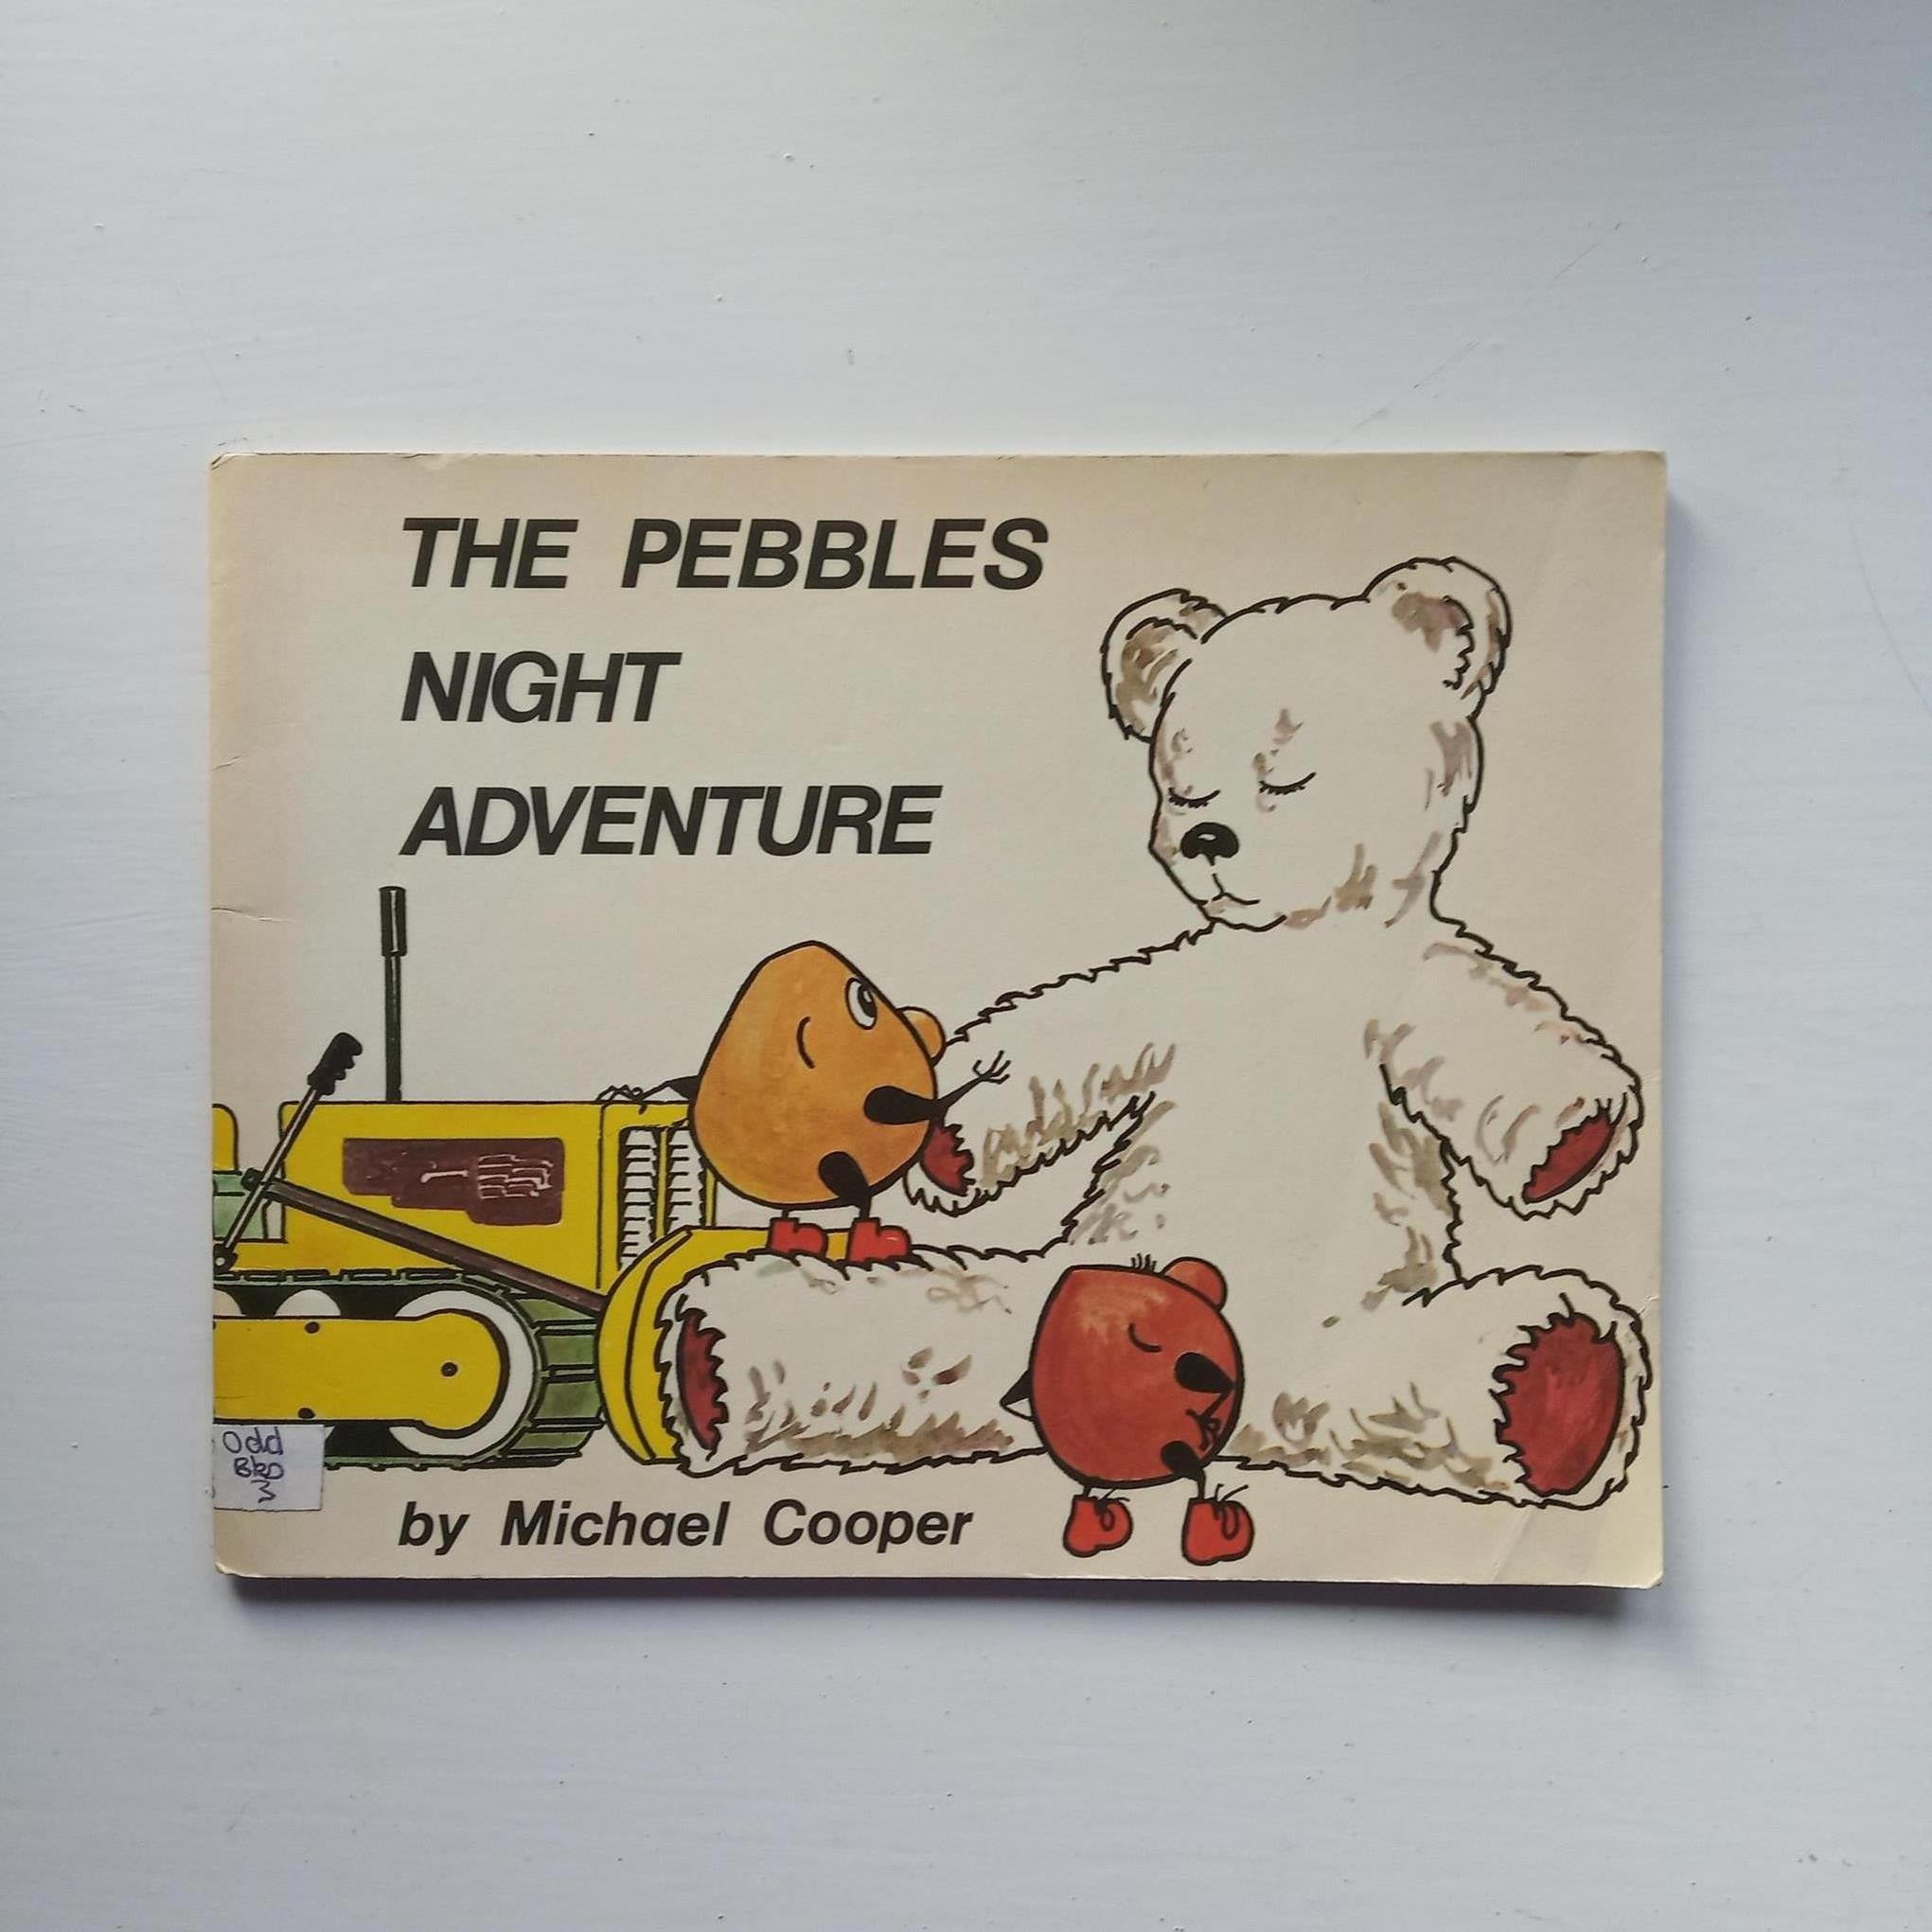 The Pebbles Night Adventure by Michael Cooper